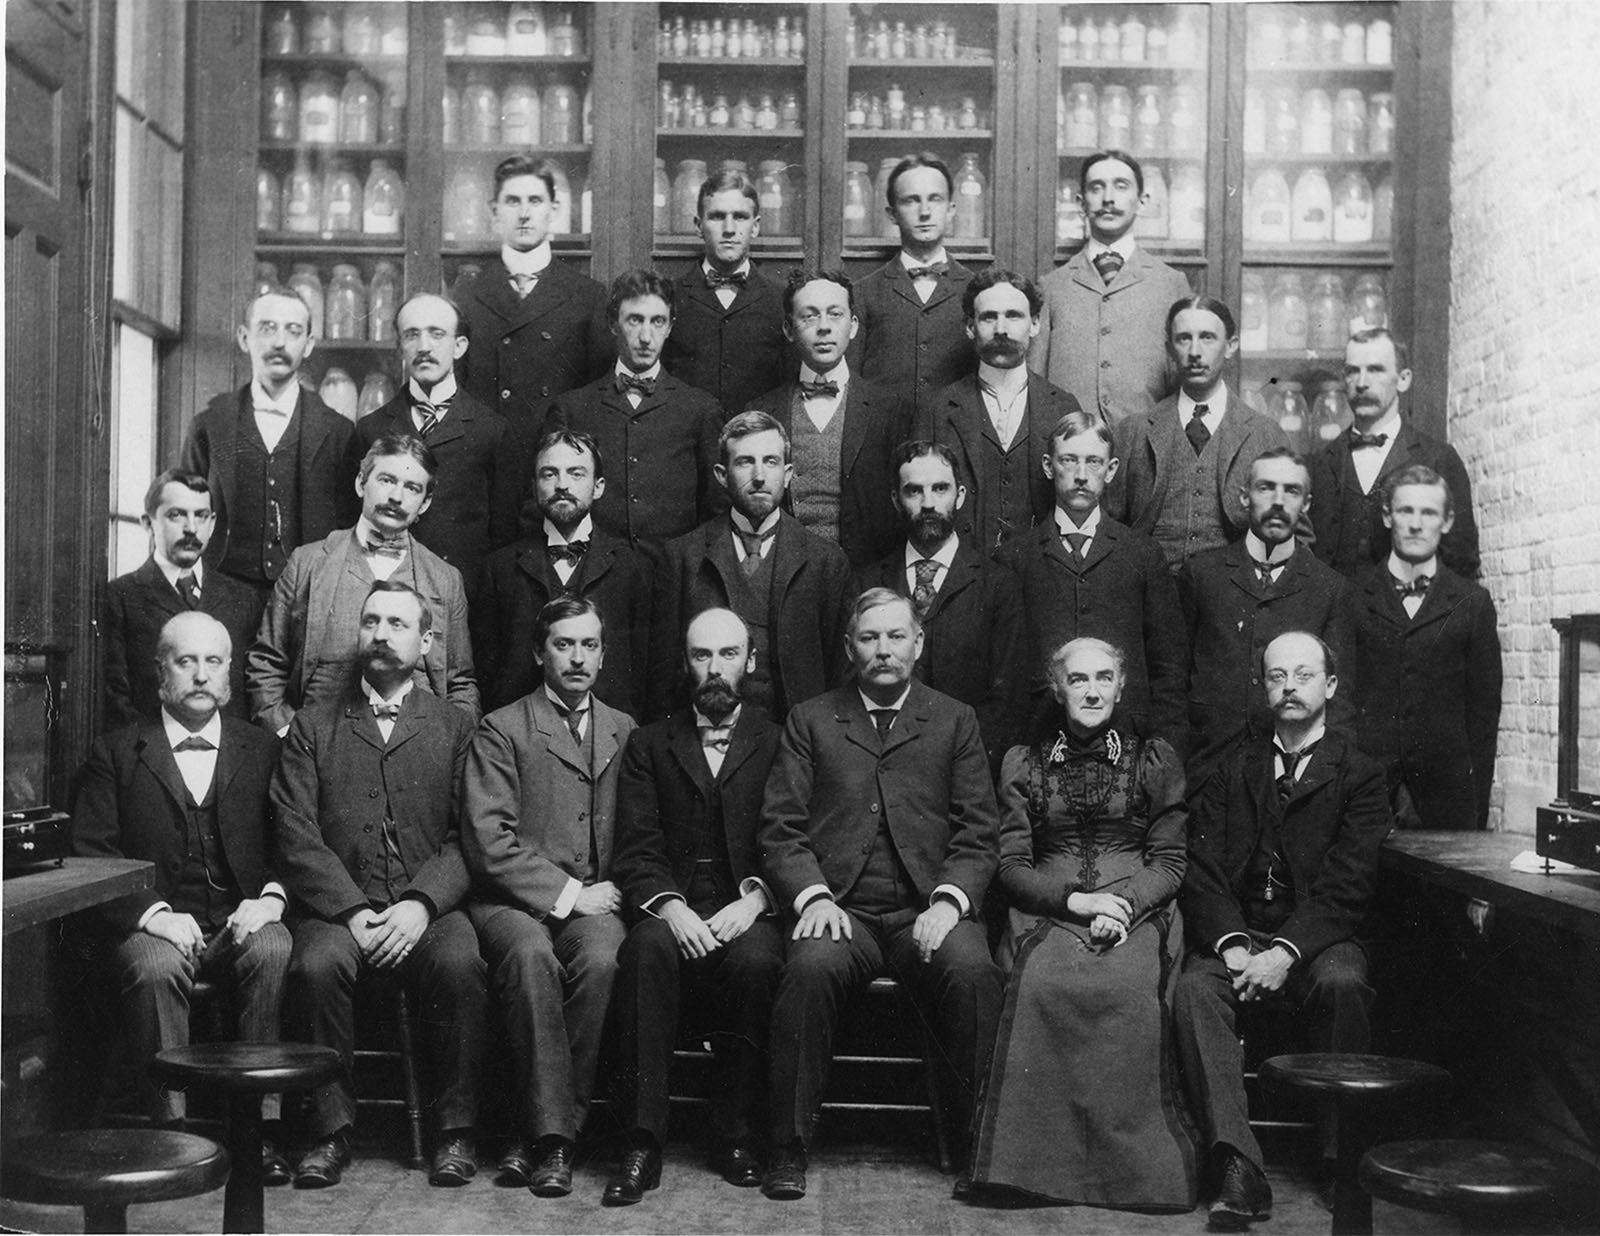 Ellen Swallow Richards and the staff of the Massachusetts Institute of Technology's Chemistry Department. Richards is the only woman in the photo. There are 25 men. All of the people photographed are white. Richards is seated in the first of four rows, and is the second figure from the right.